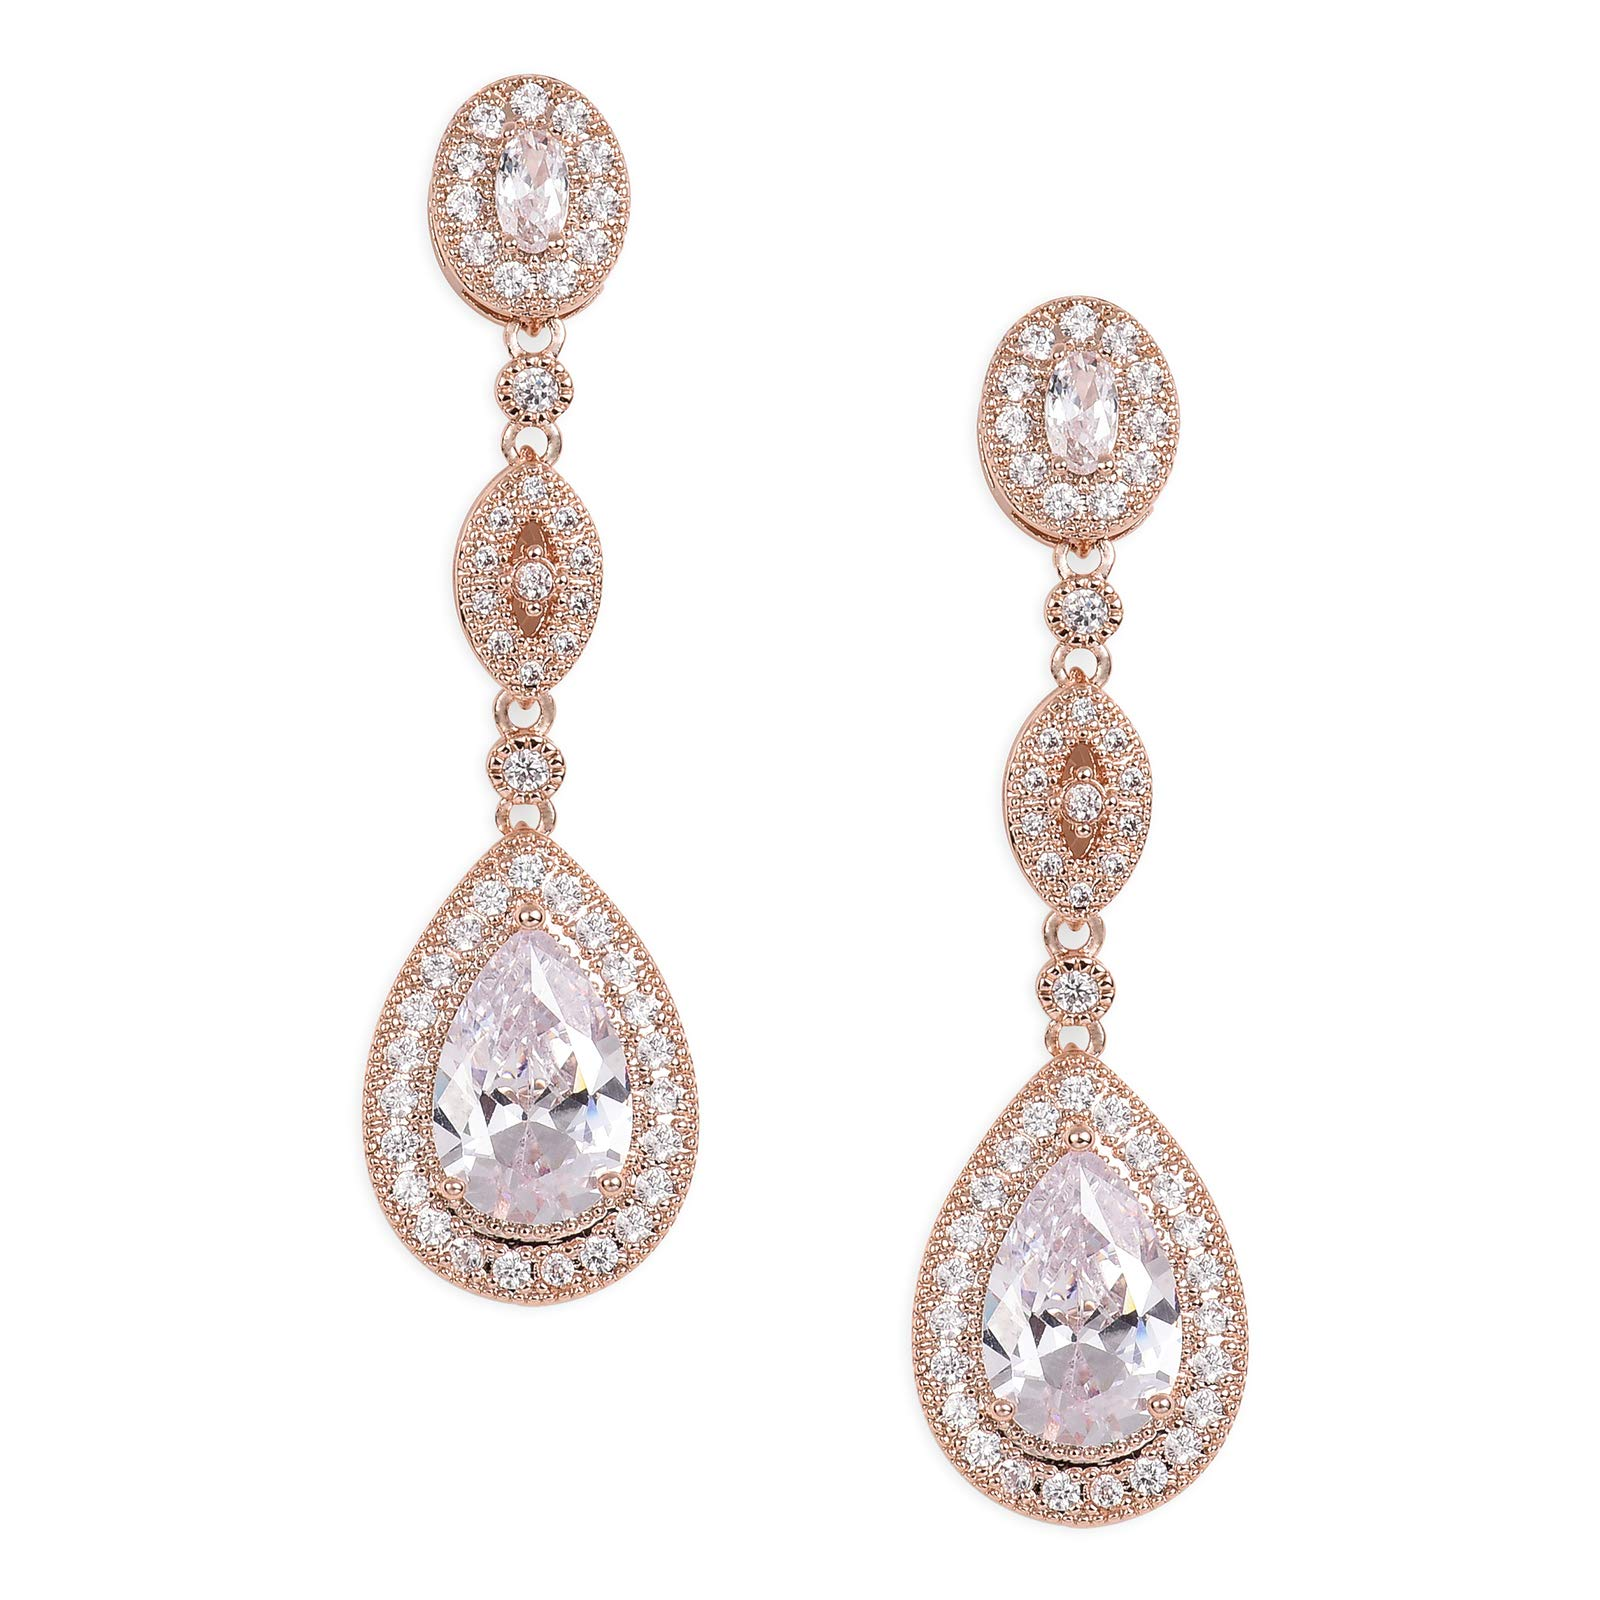 SWEETV Cubic Zirconia Teardrop Wedding Bridal Earrings for Women,Bridesmaids,Brides - Rose Gold Crystal Rhinestones Dangling Earrings Jewelry